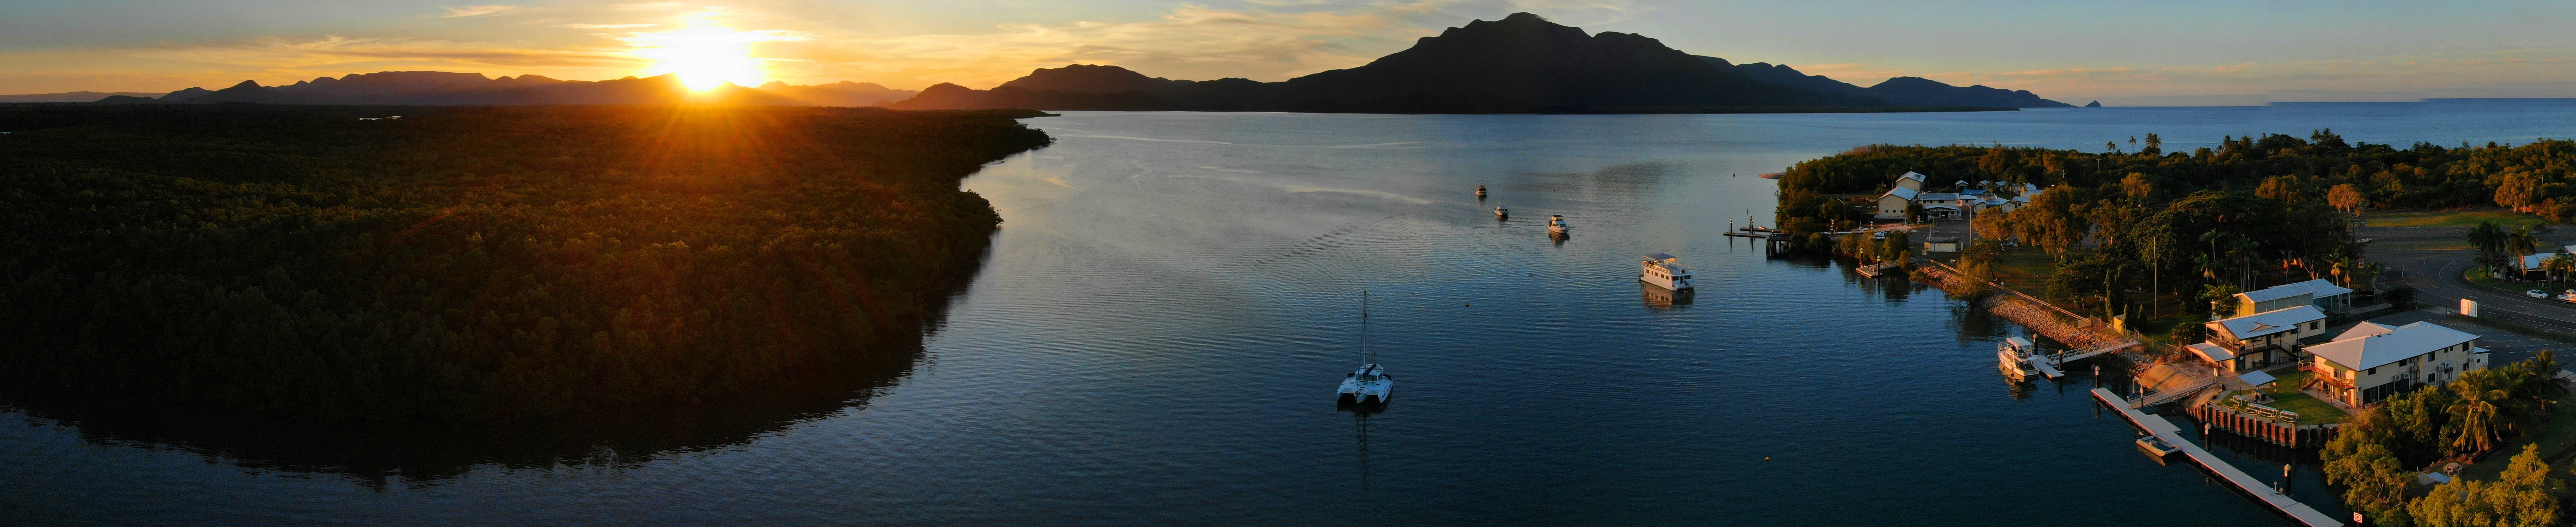 Hinchinbrook Marine Cove Resort - Townsville Tourism